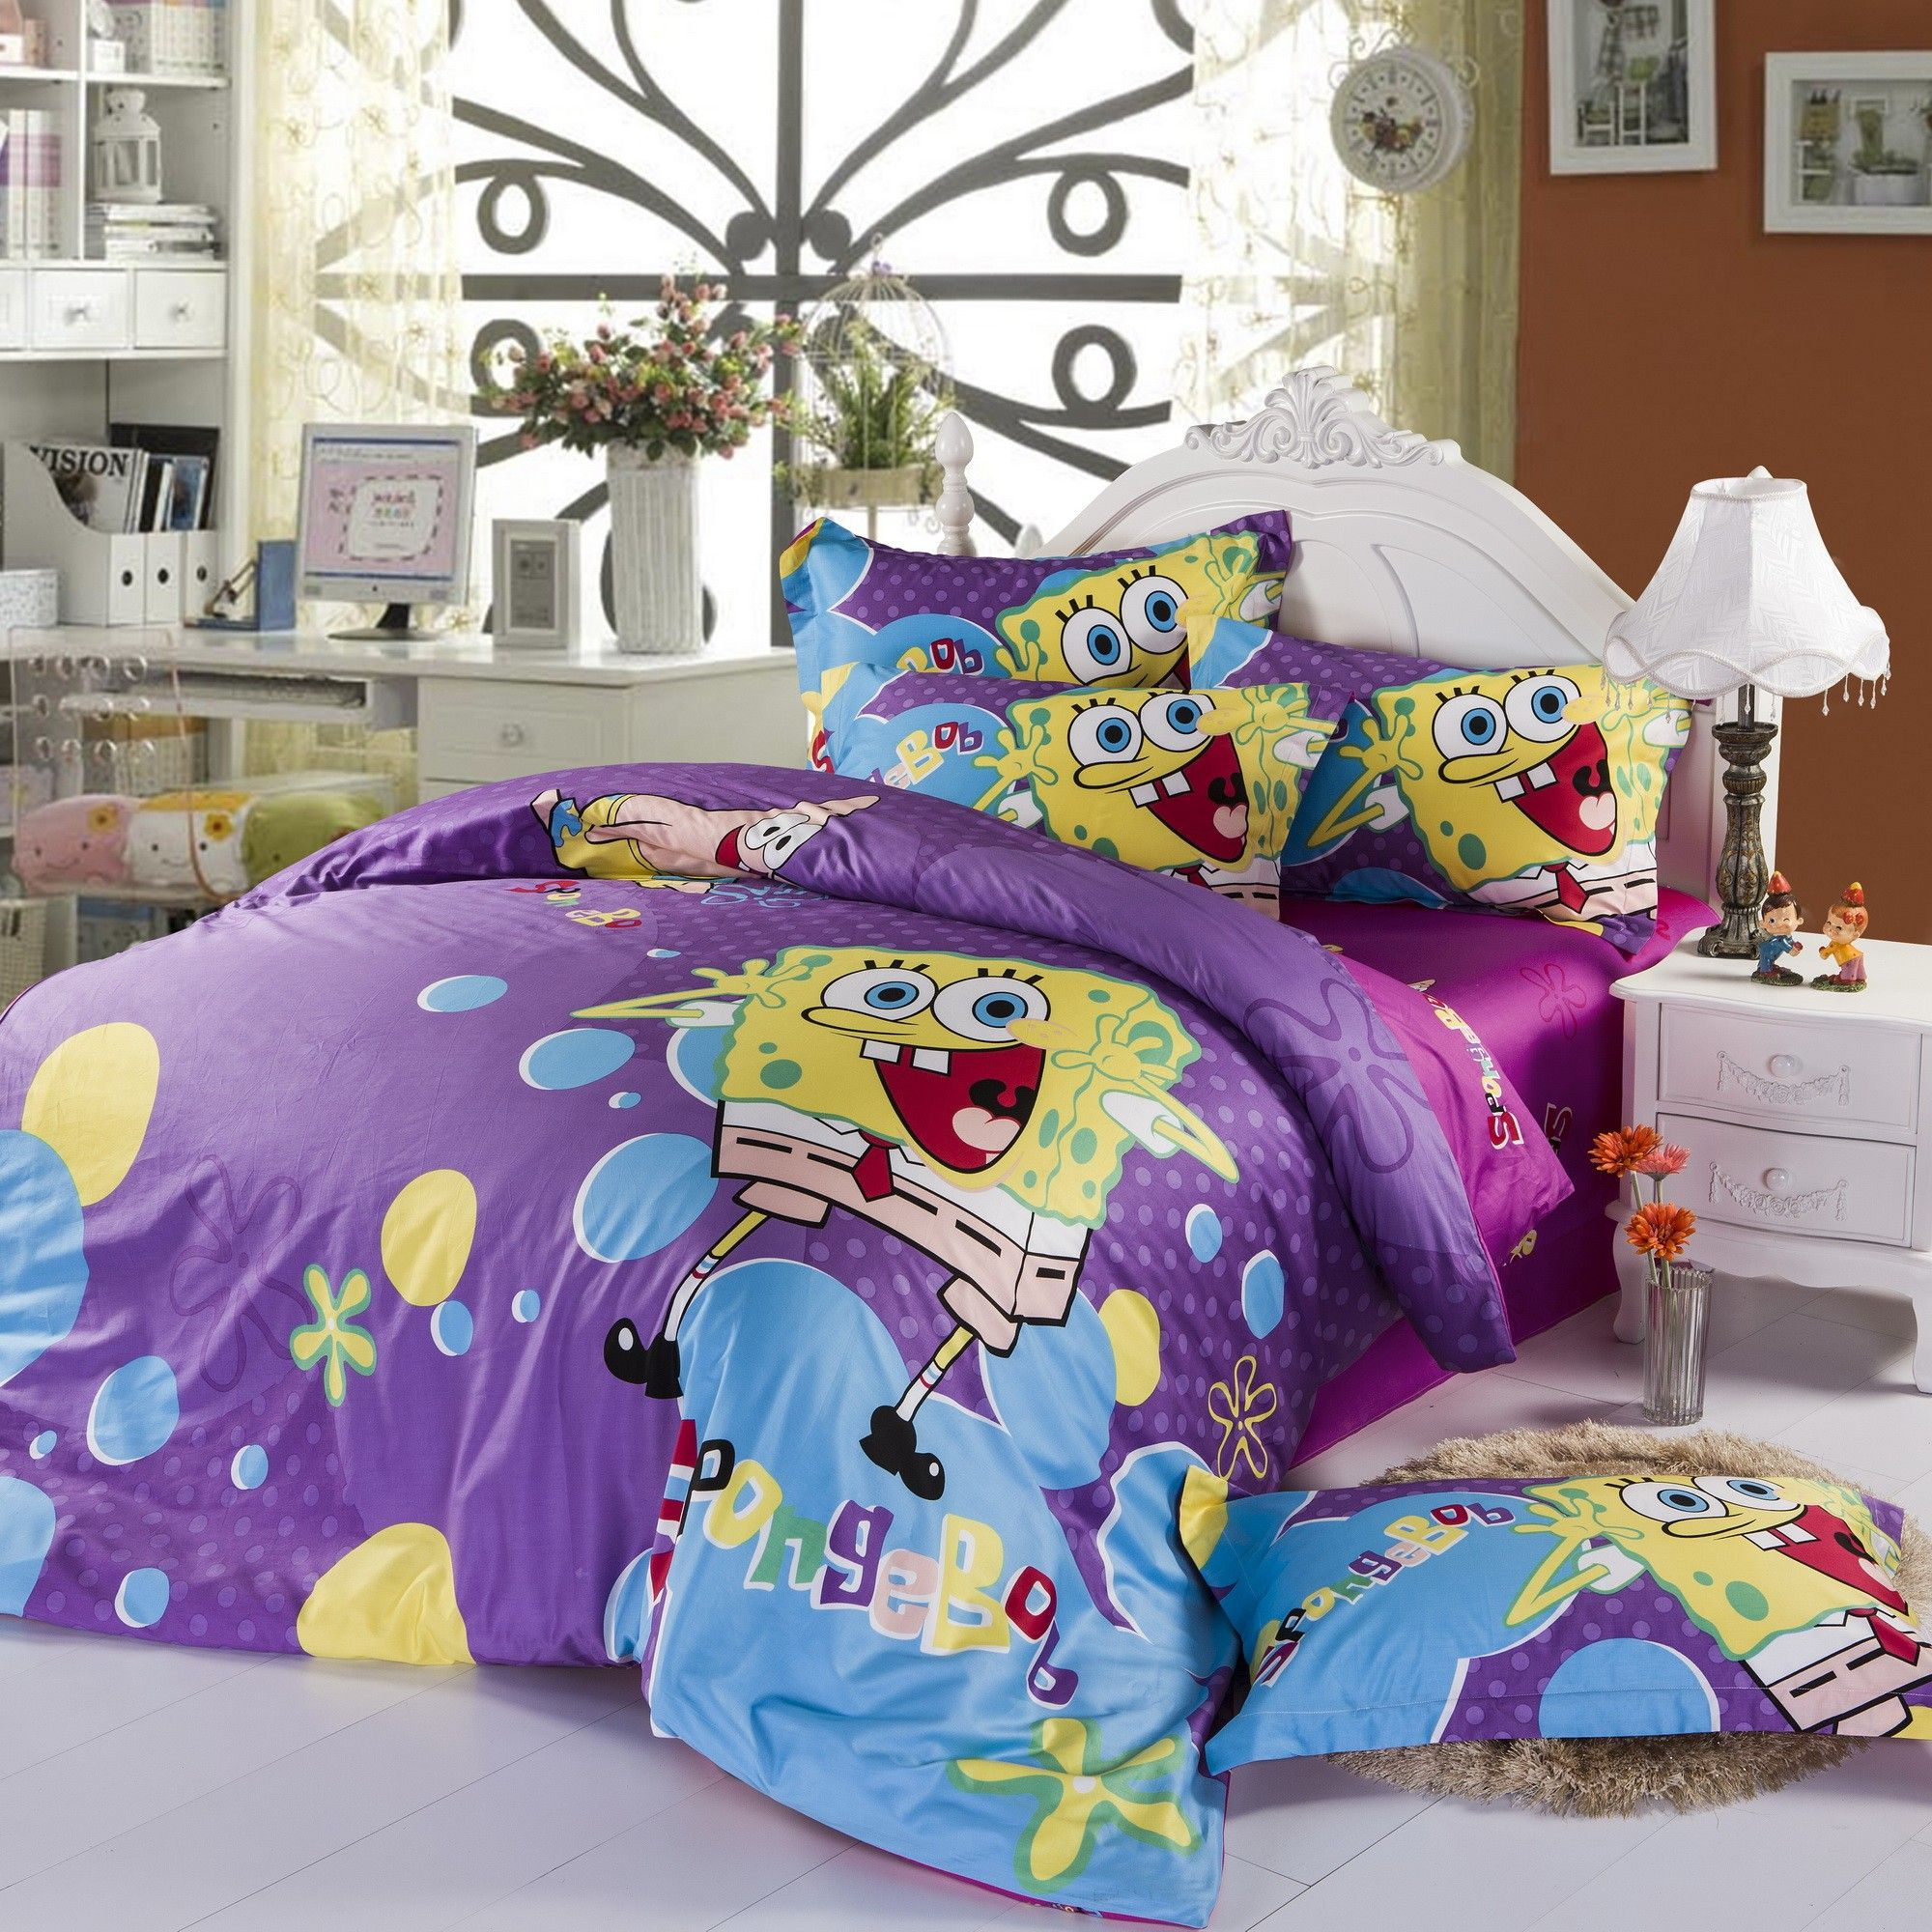 set dimensions walmart chart duvetss comforters yellow bedding together of comforte mouse full queen cheap sets grey minnie covers duvet duvets cotton with size sheets comf bodacious sizes bag